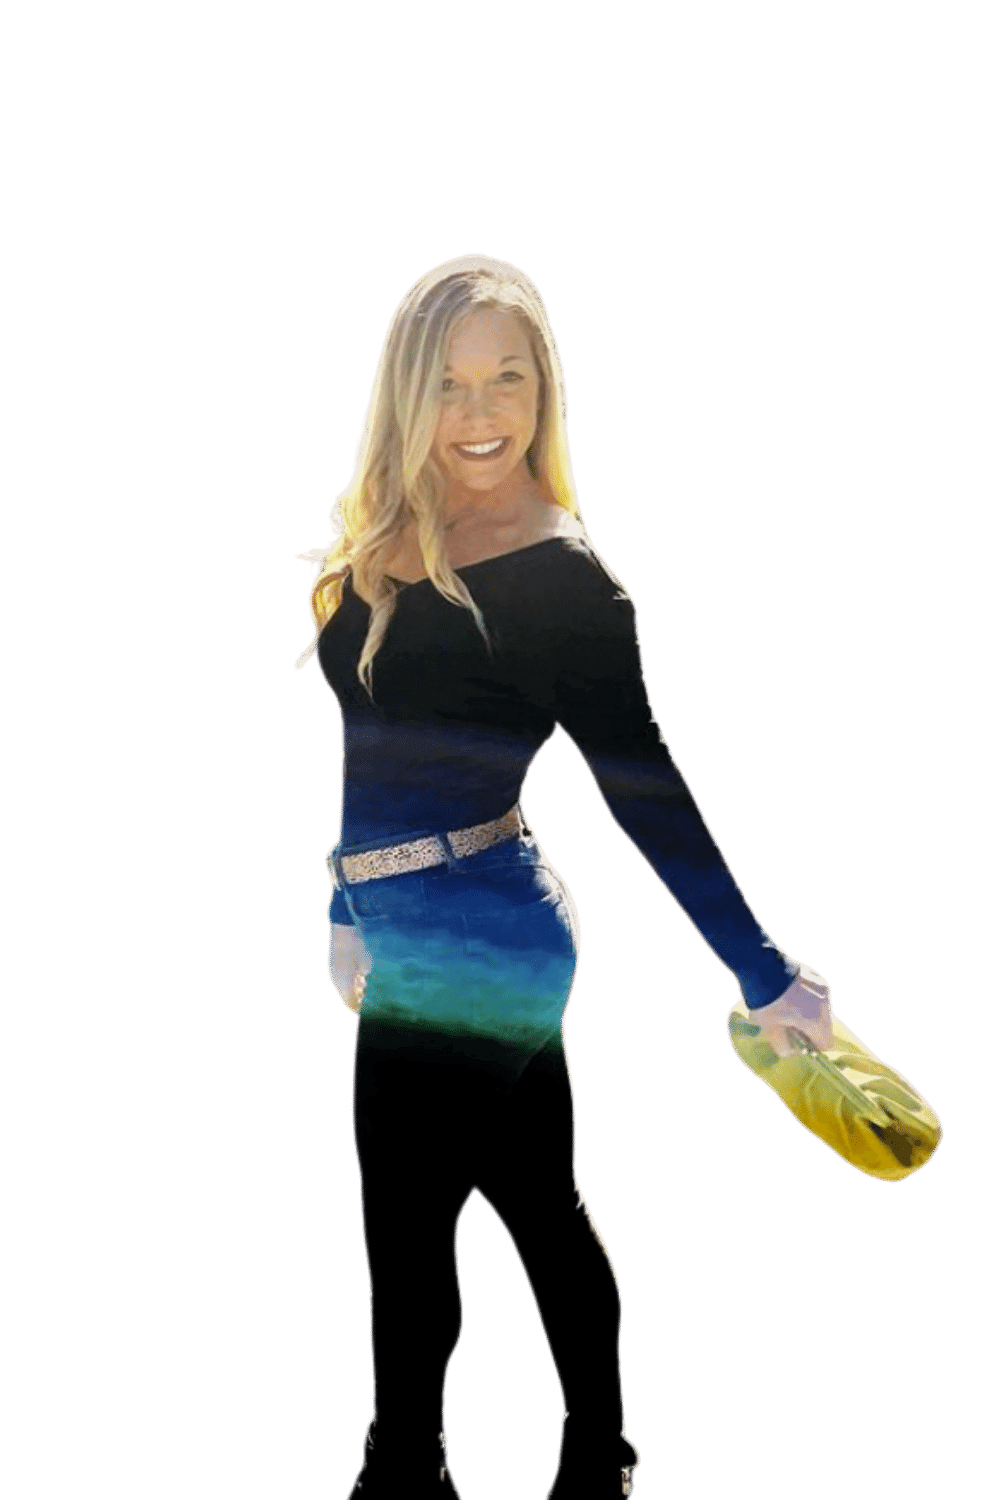 young Blond woman smiling with yellow purse